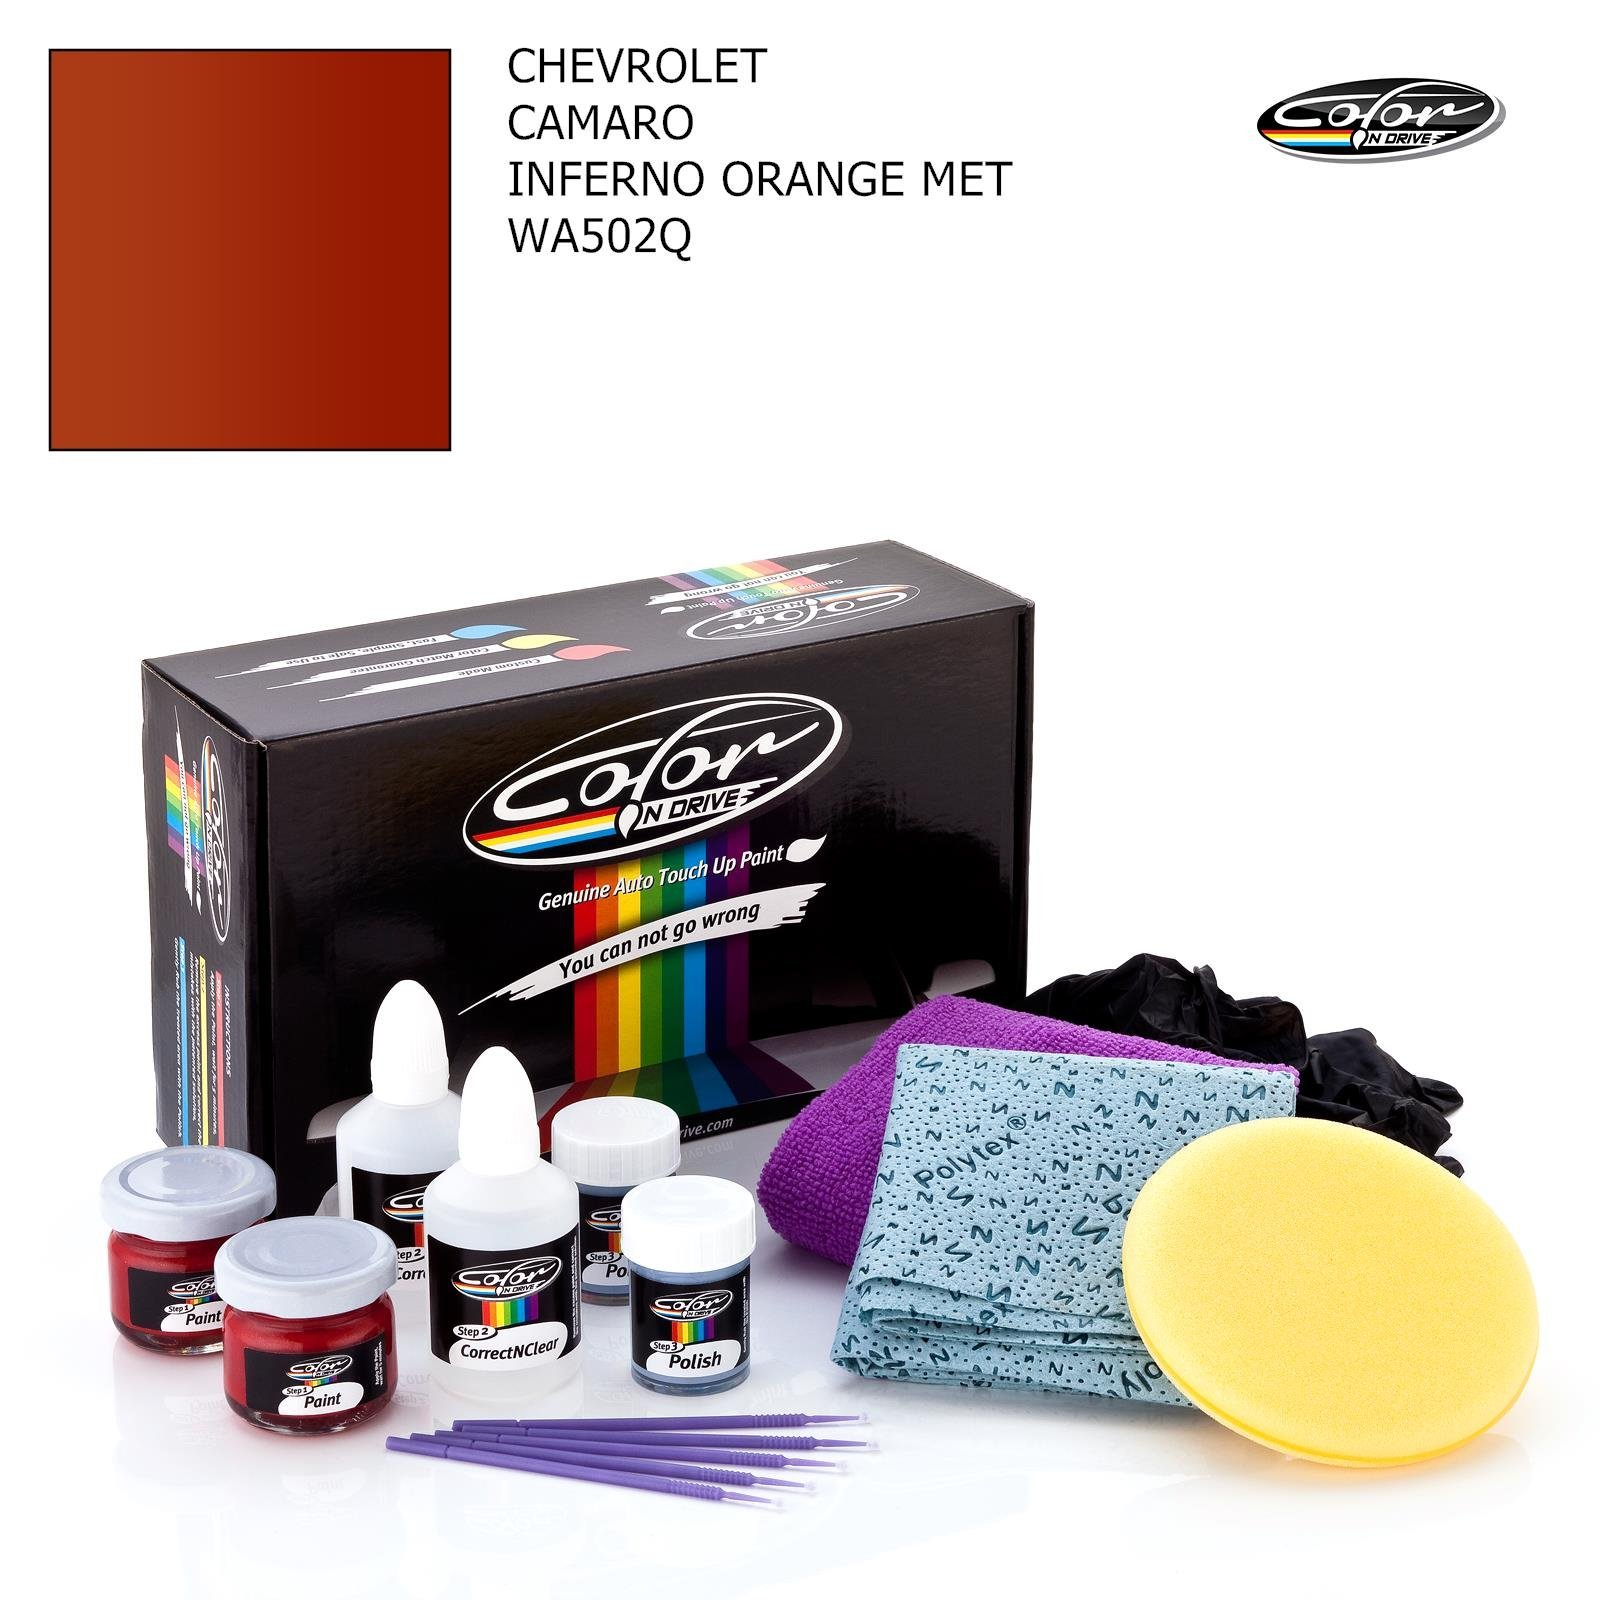 Chevrolet Camaro/Inferno Orange MET - WA502Q / Color N Drive Touch UP Paint System for Paint Chips and Scratches/Basic Pack